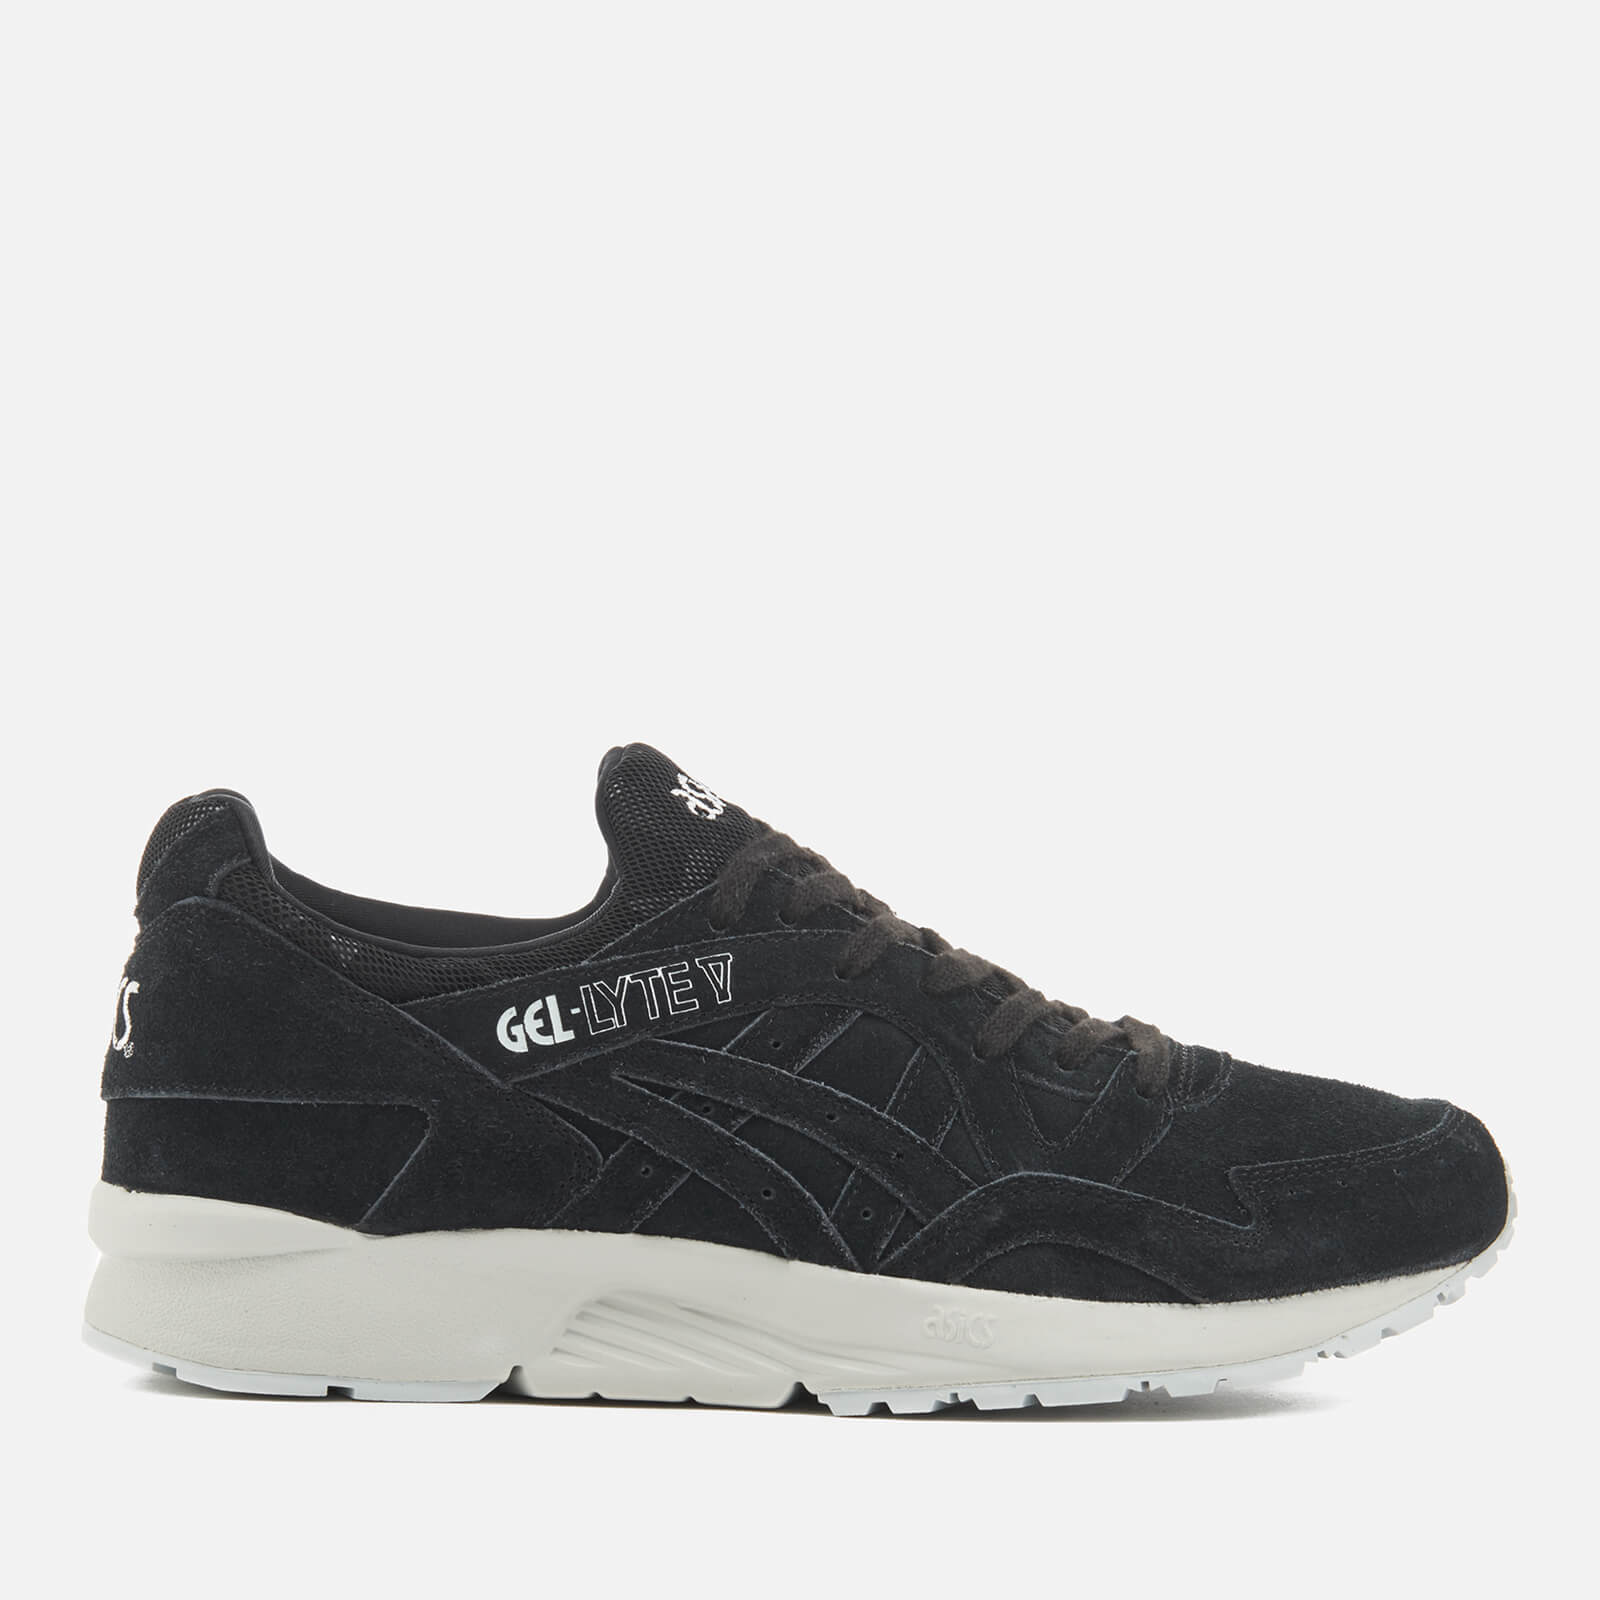 a573a575d Asics Lifestyle Gel-Lyte V Trainers - Black Black - Free UK Delivery ...